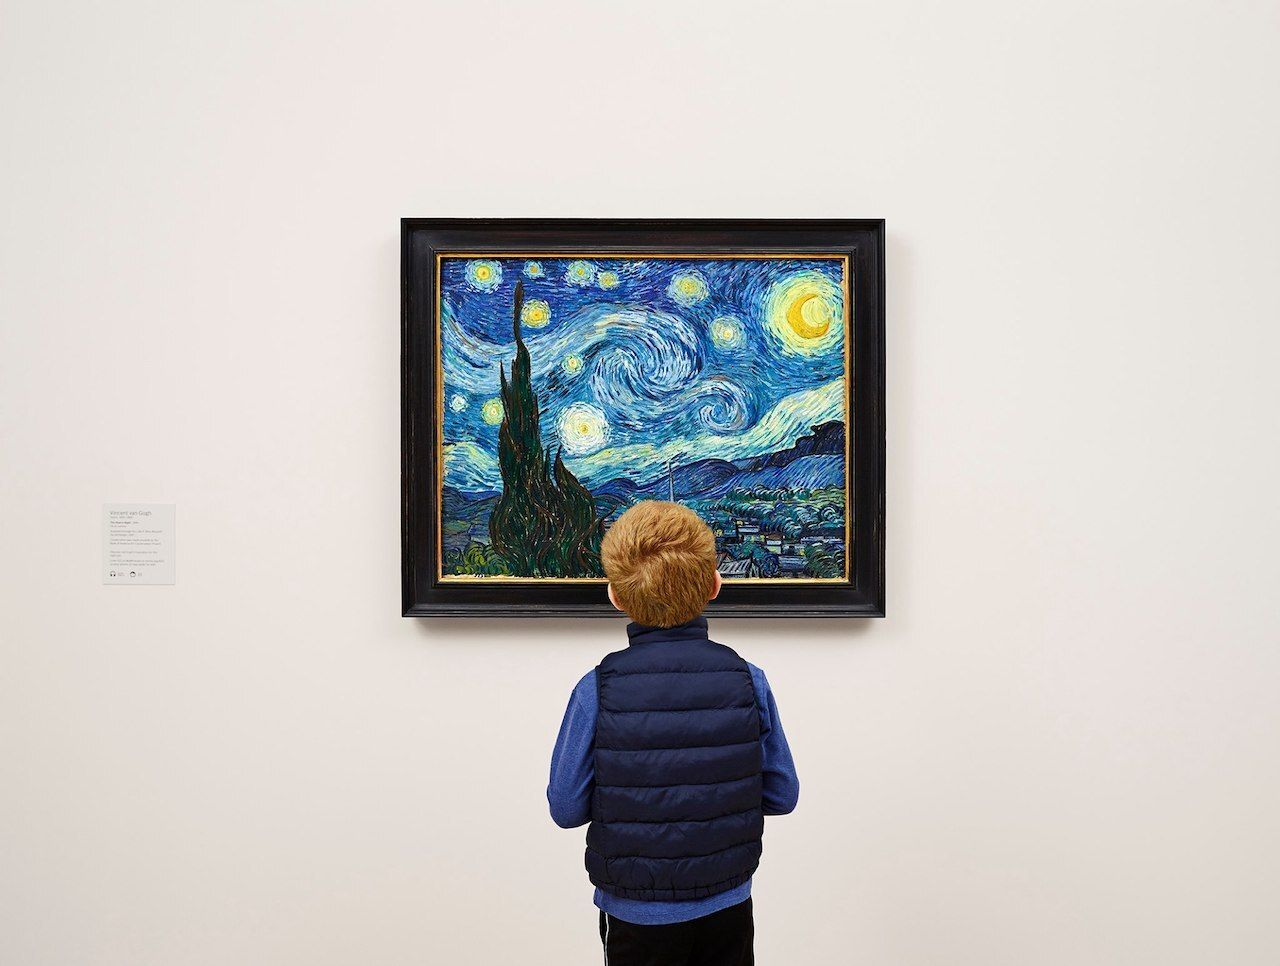 The Starry Night by Vincent van Gogh at MoMA New York City kid looking at it, The MoMA